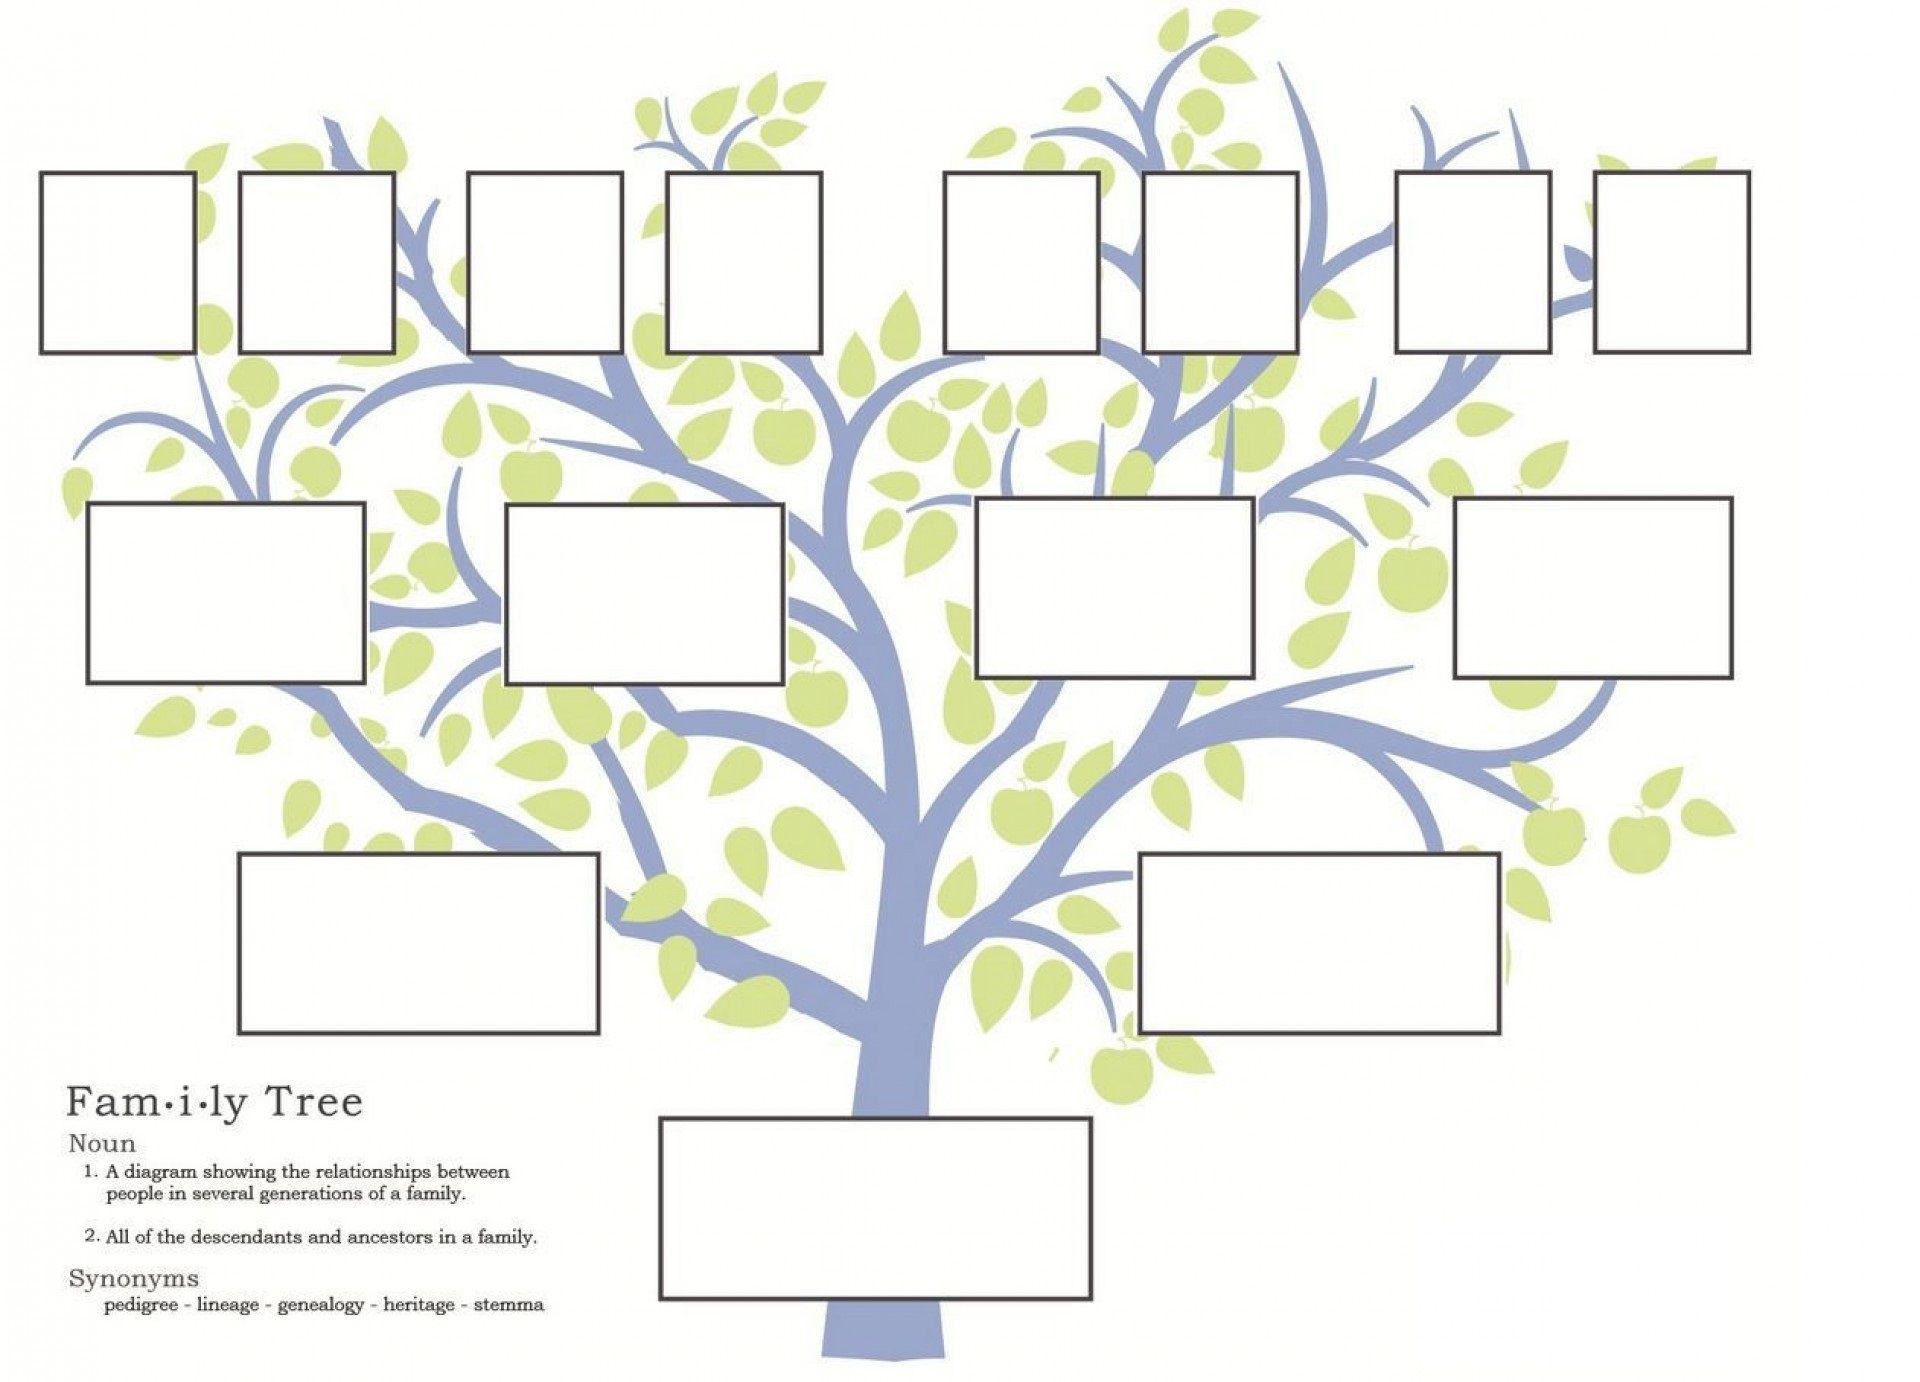 010 Unbelievable Family Tree Template Word Free Download Image 1920